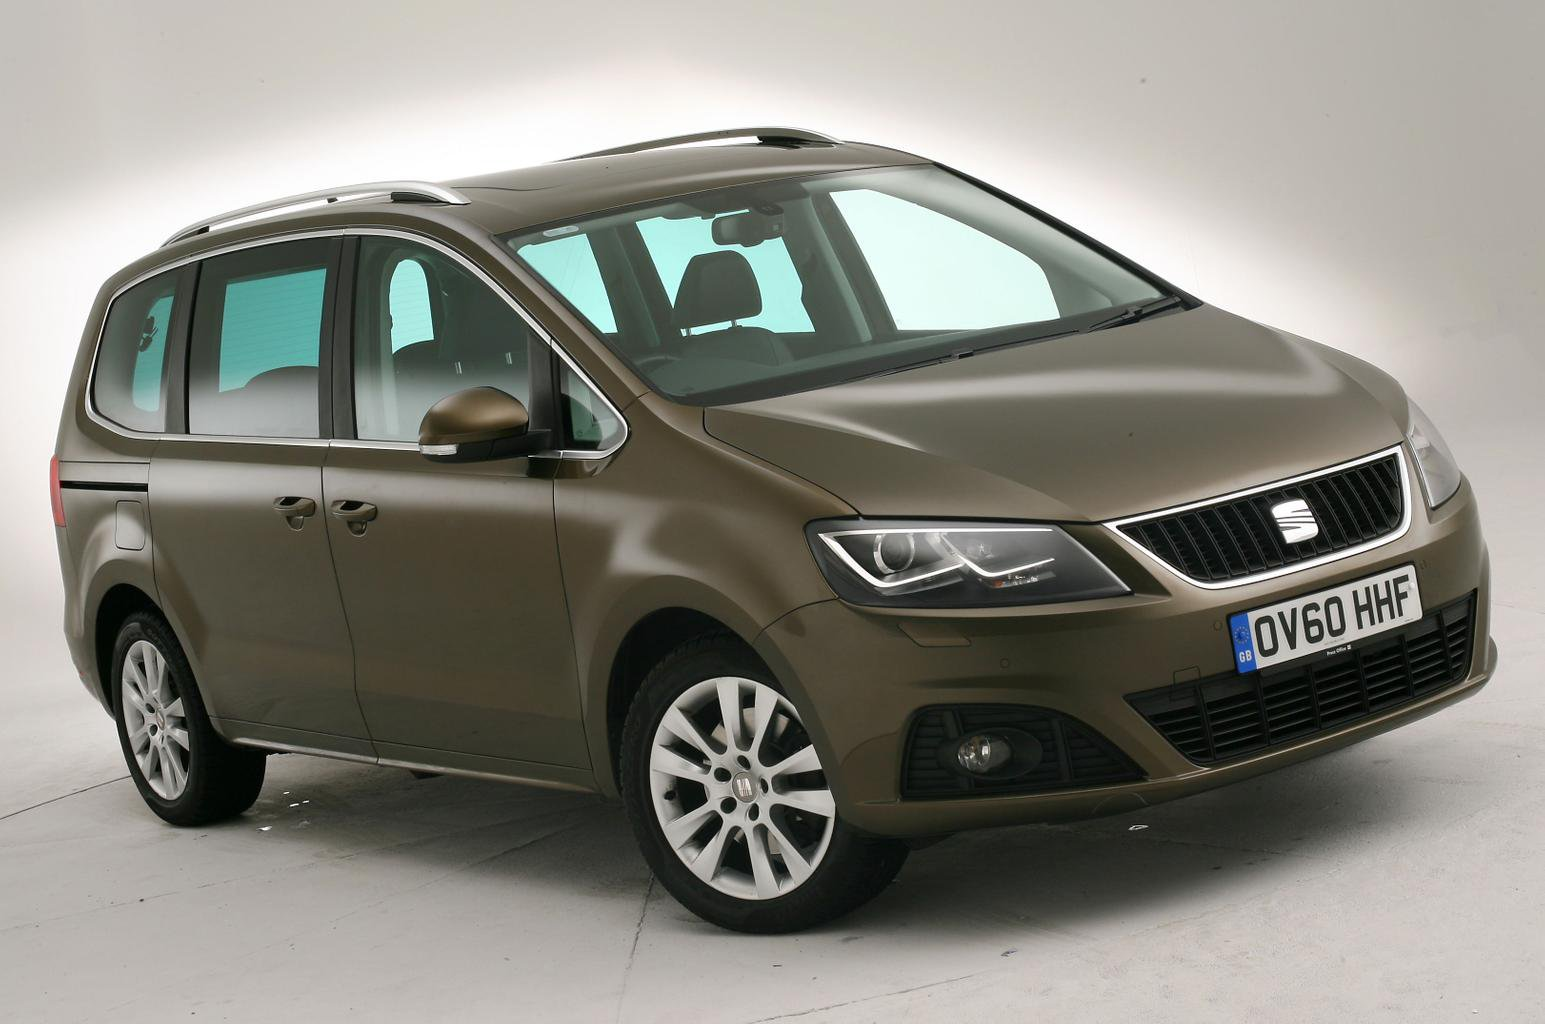 Used 7-seater MPVs tested: Ford S-Max vs Seat Alhambra vs Vauxhall Zafira Tourer